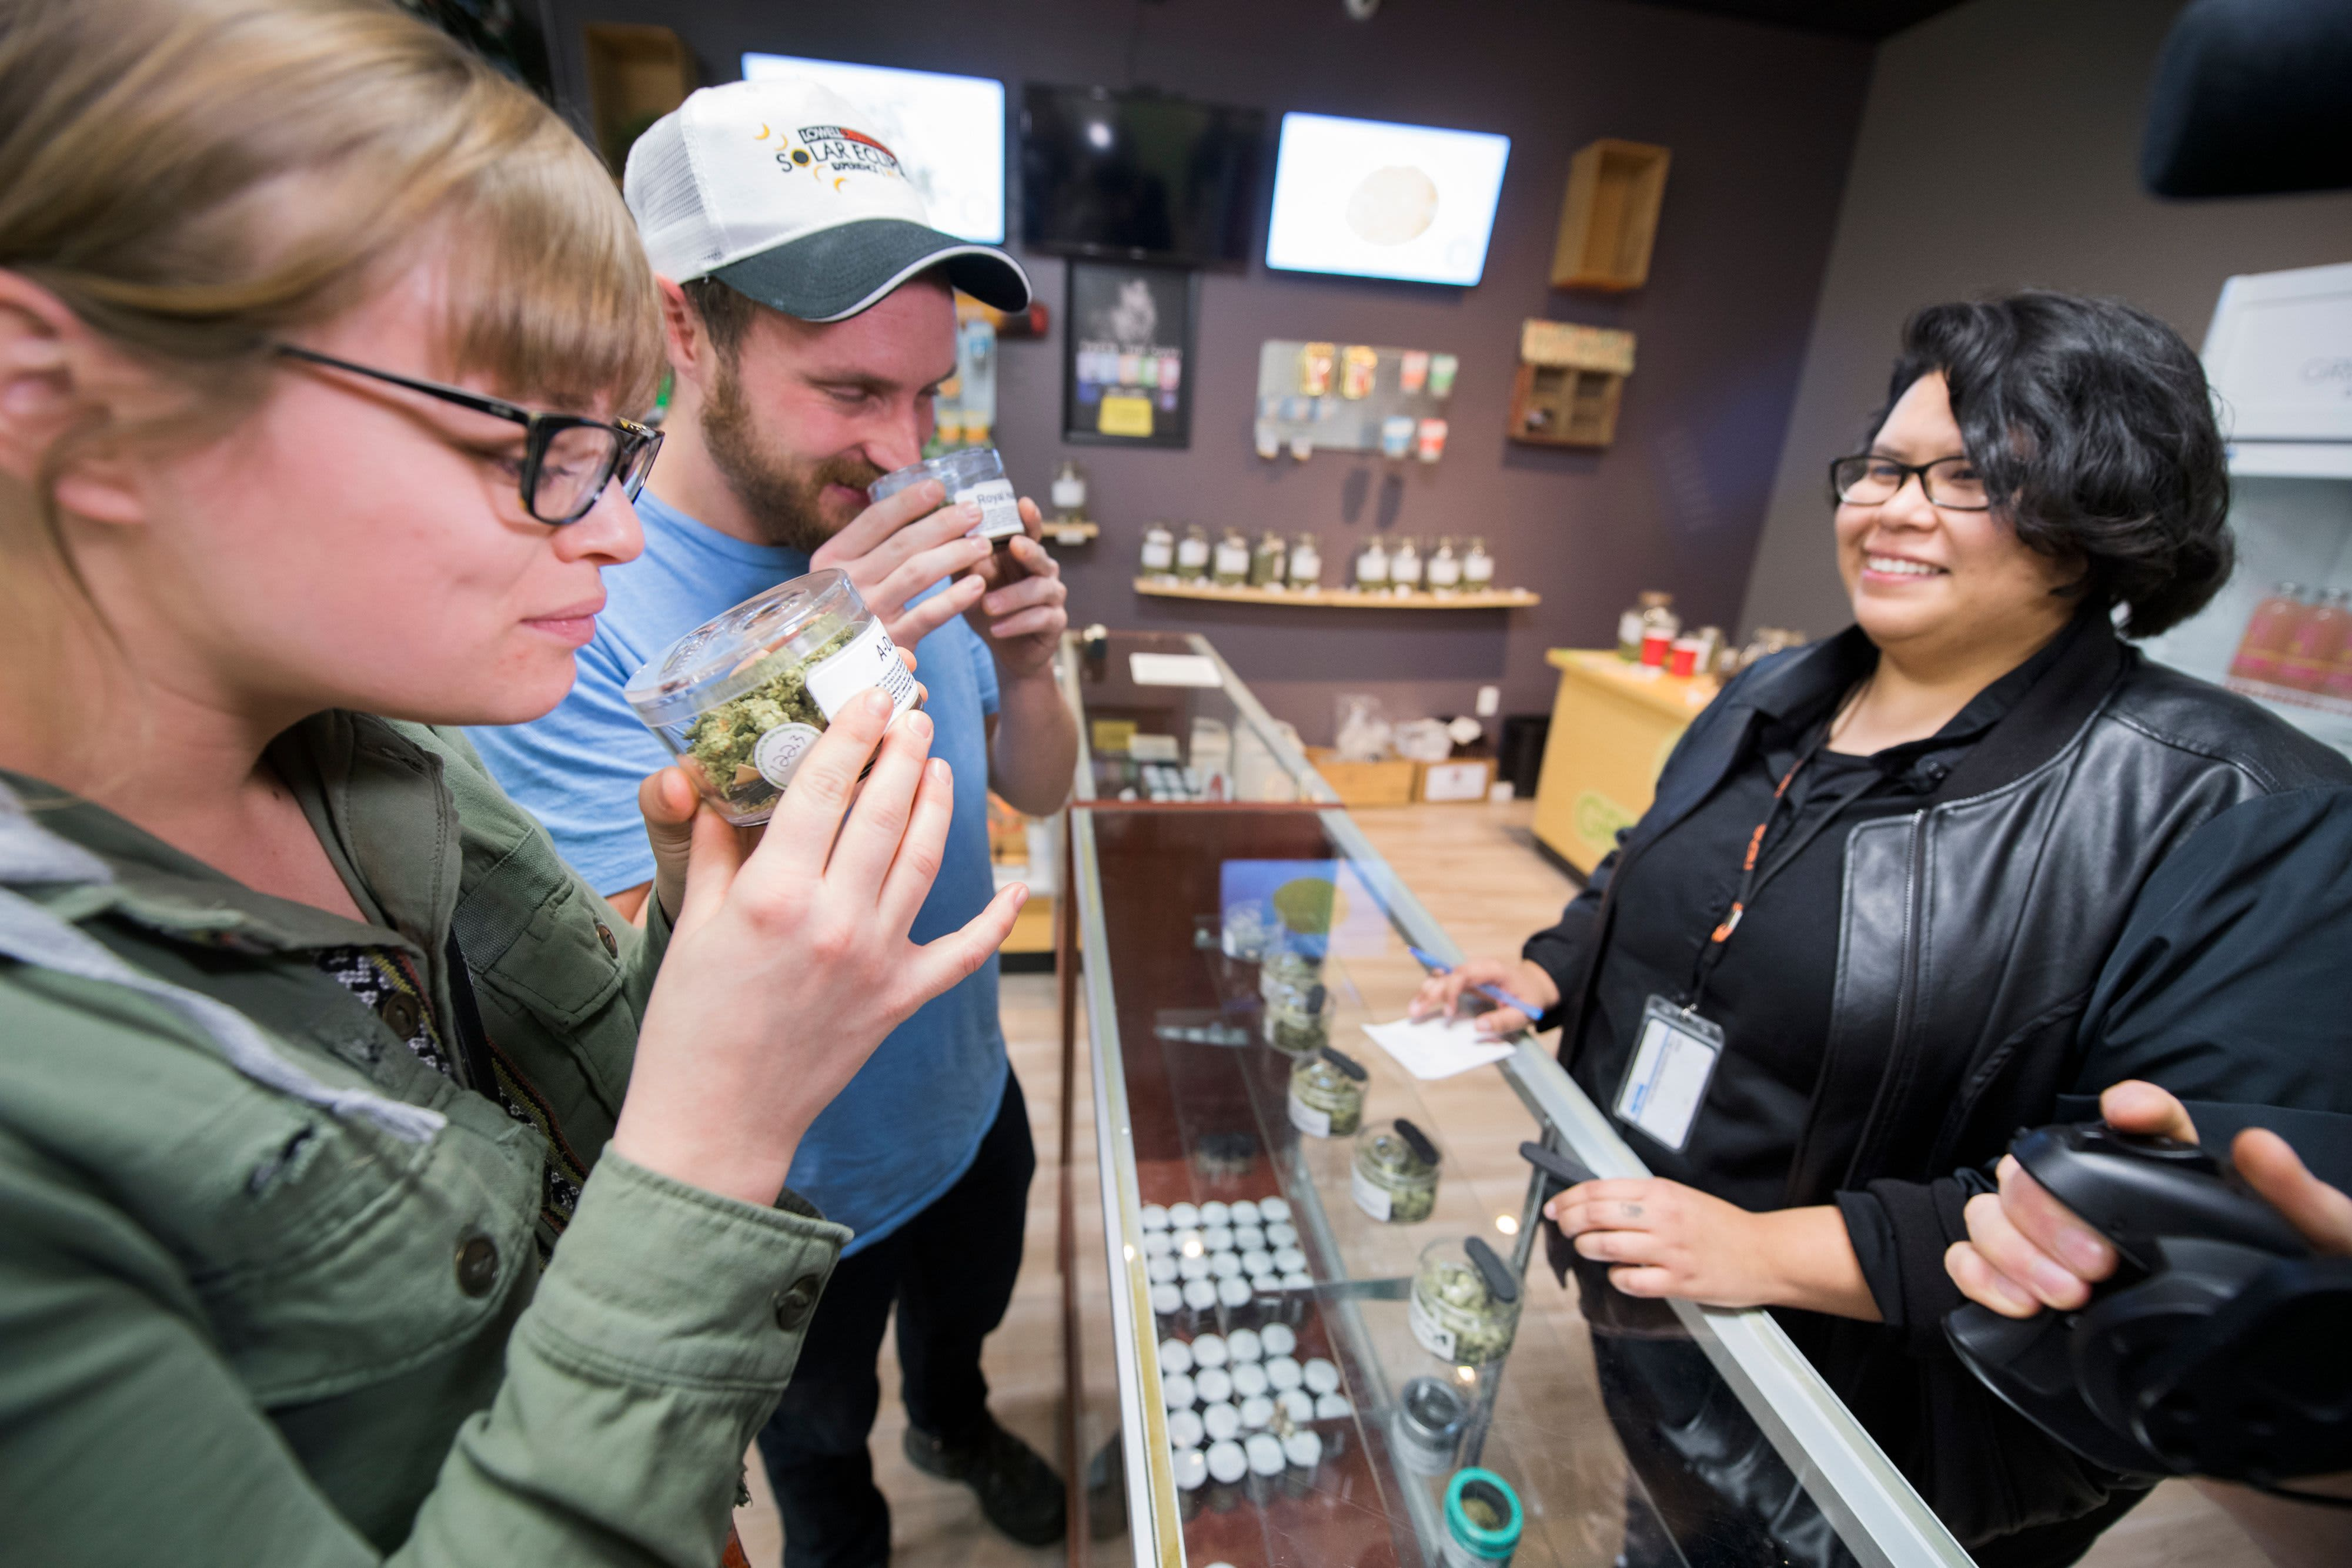 Legal pot efforts have turned states from narcs to pushers